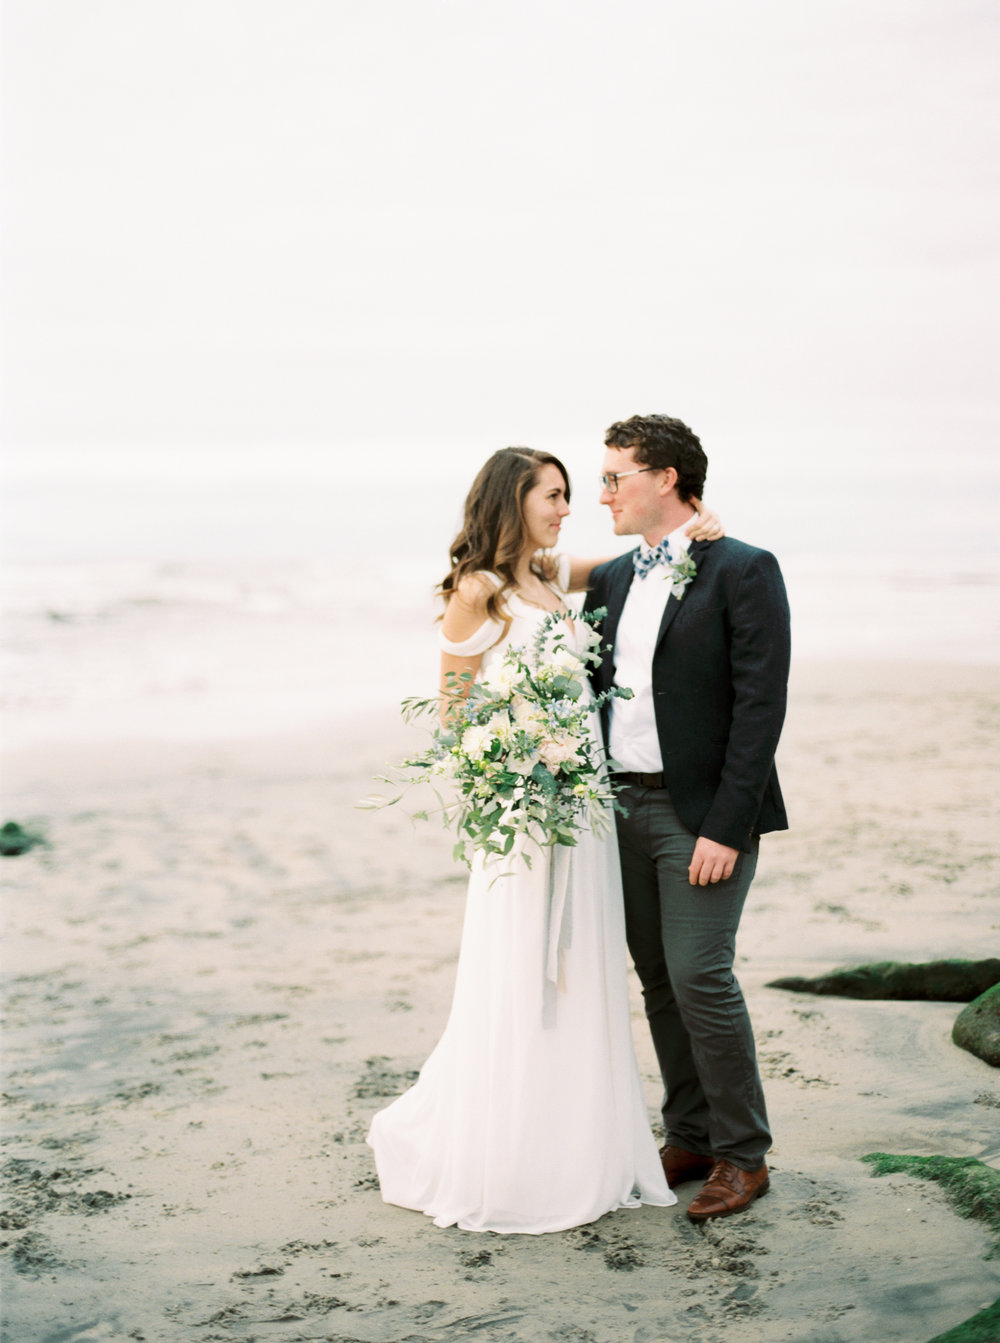 California_Wedding_Photography_Film_FallenPhotograhpy-50.jpg